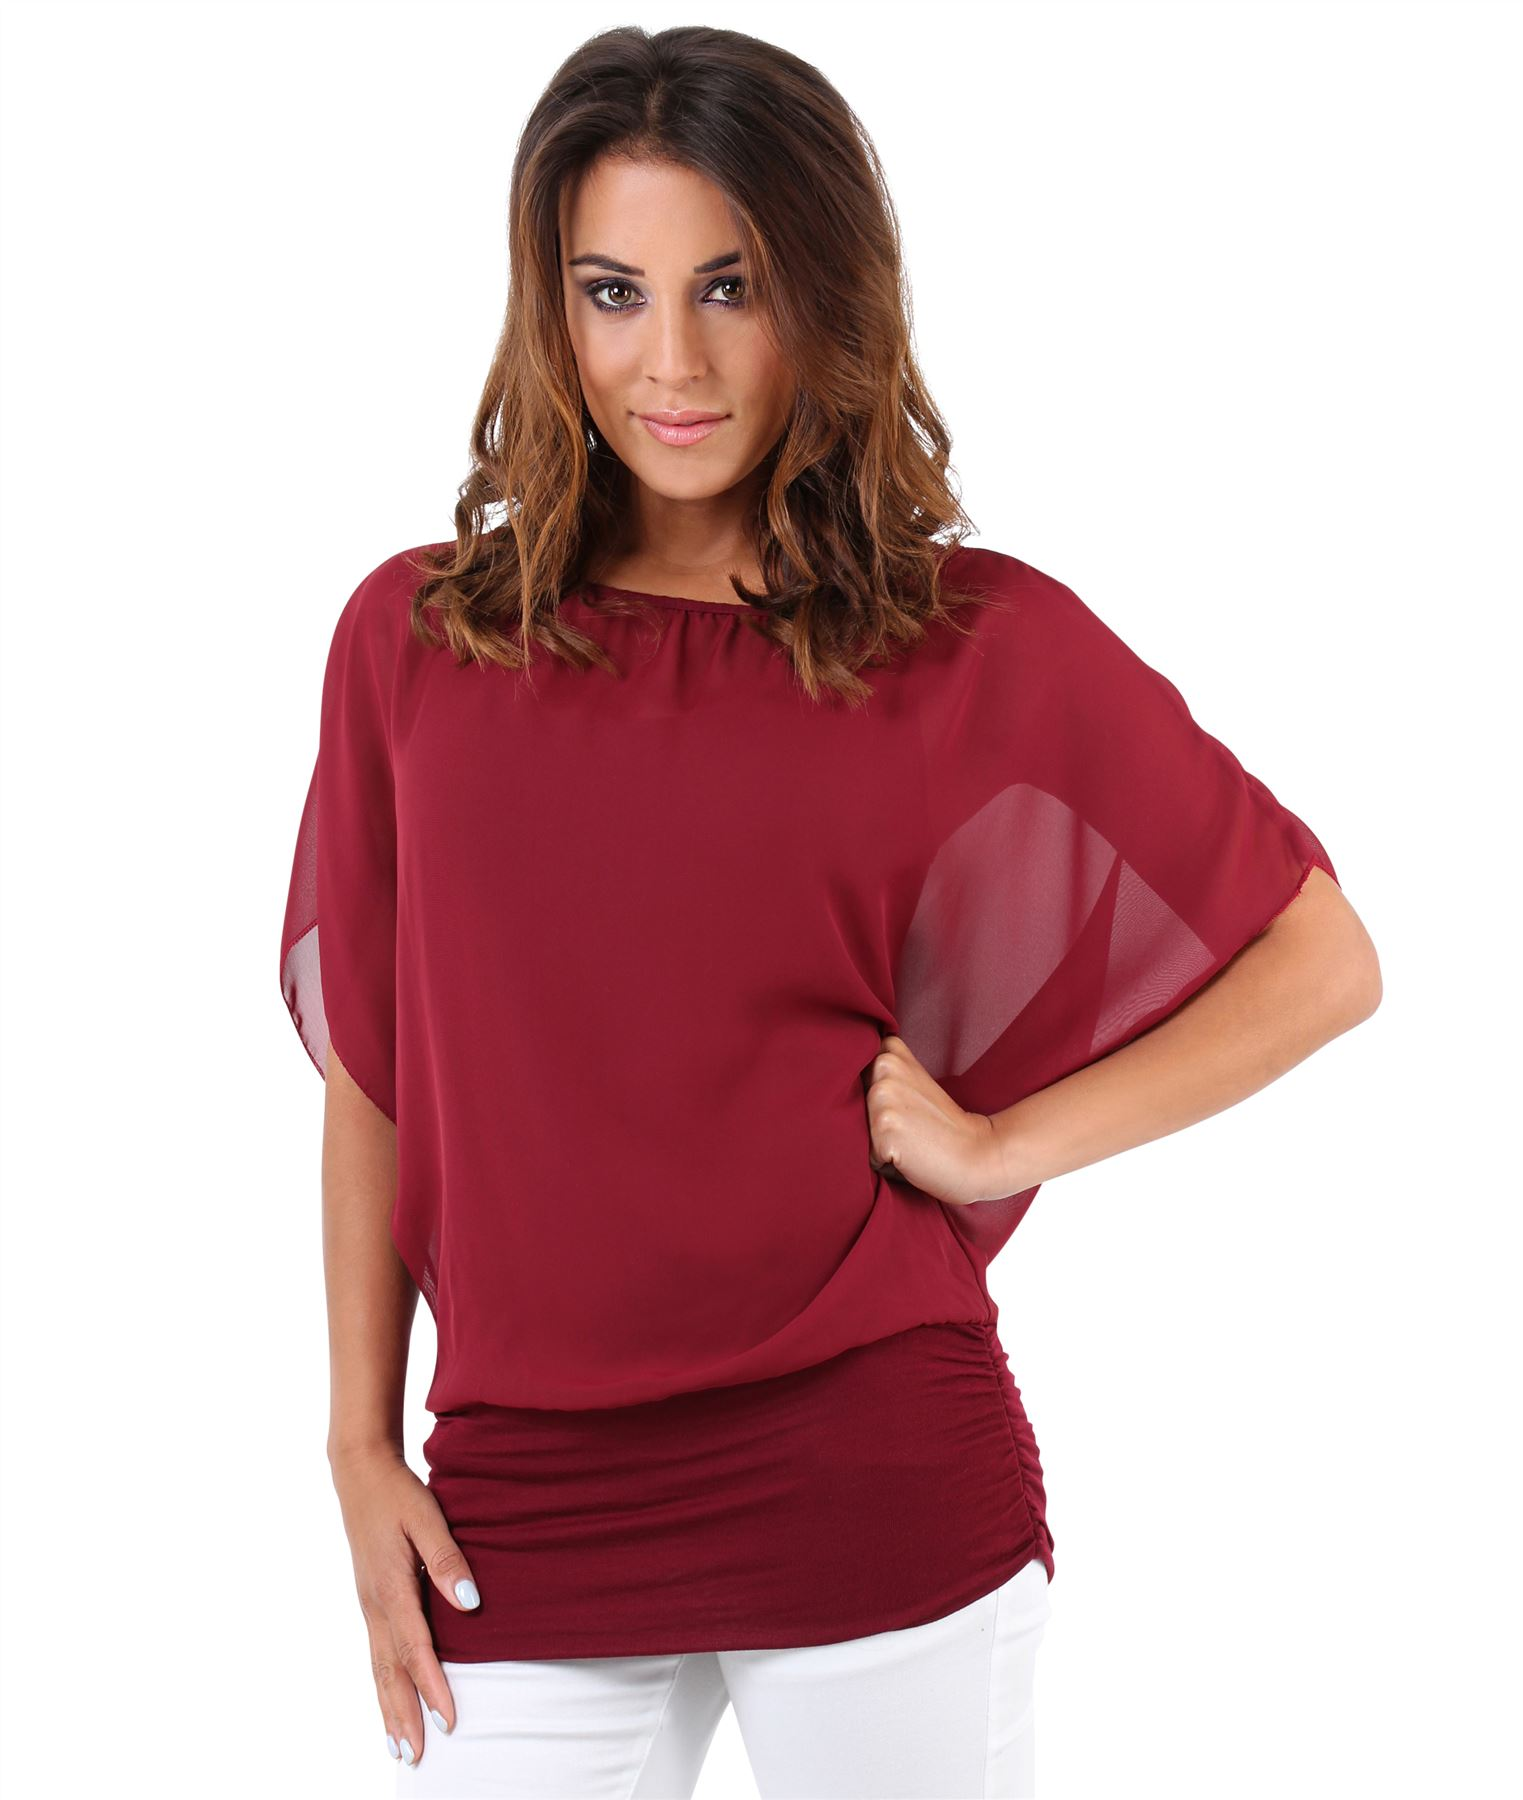 Womens-Scoop-Neck-Blouse-Baggy-Batwing-T-Shirt-Top-Ladies-Oversized-Chiffon-2in1 thumbnail 33